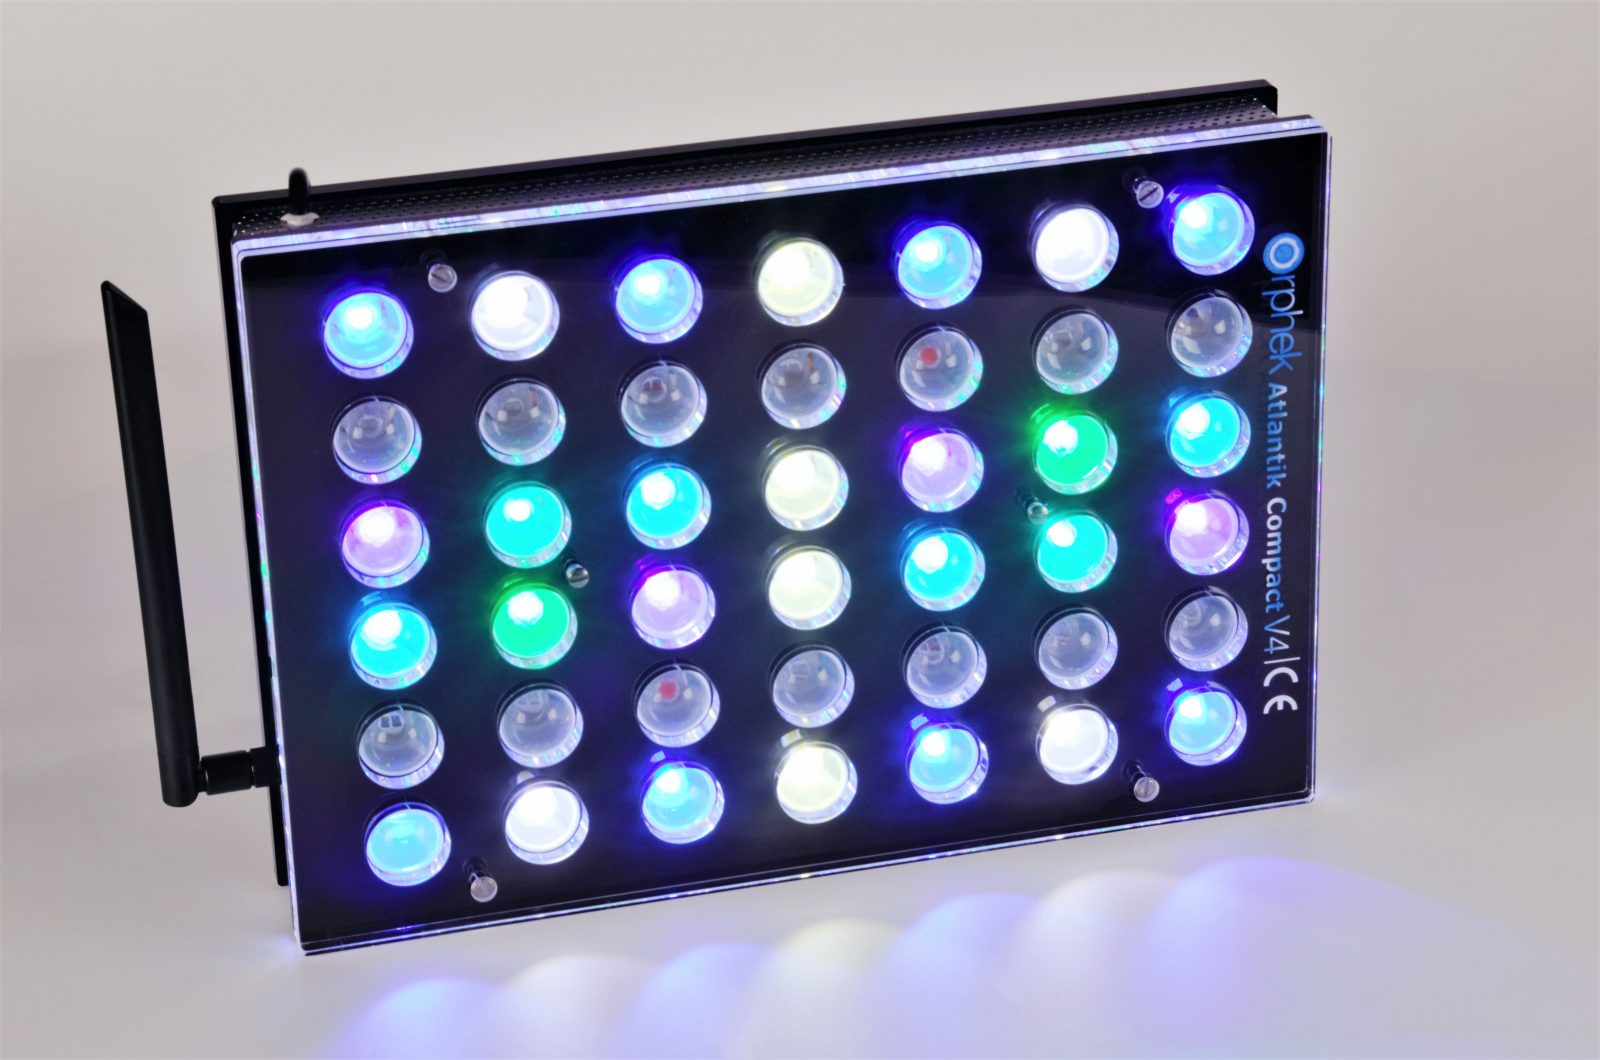 Orphek-Aquarium-Iluminación-LED-Atlantik -Compact-V4-light-on-channel 1 + 2